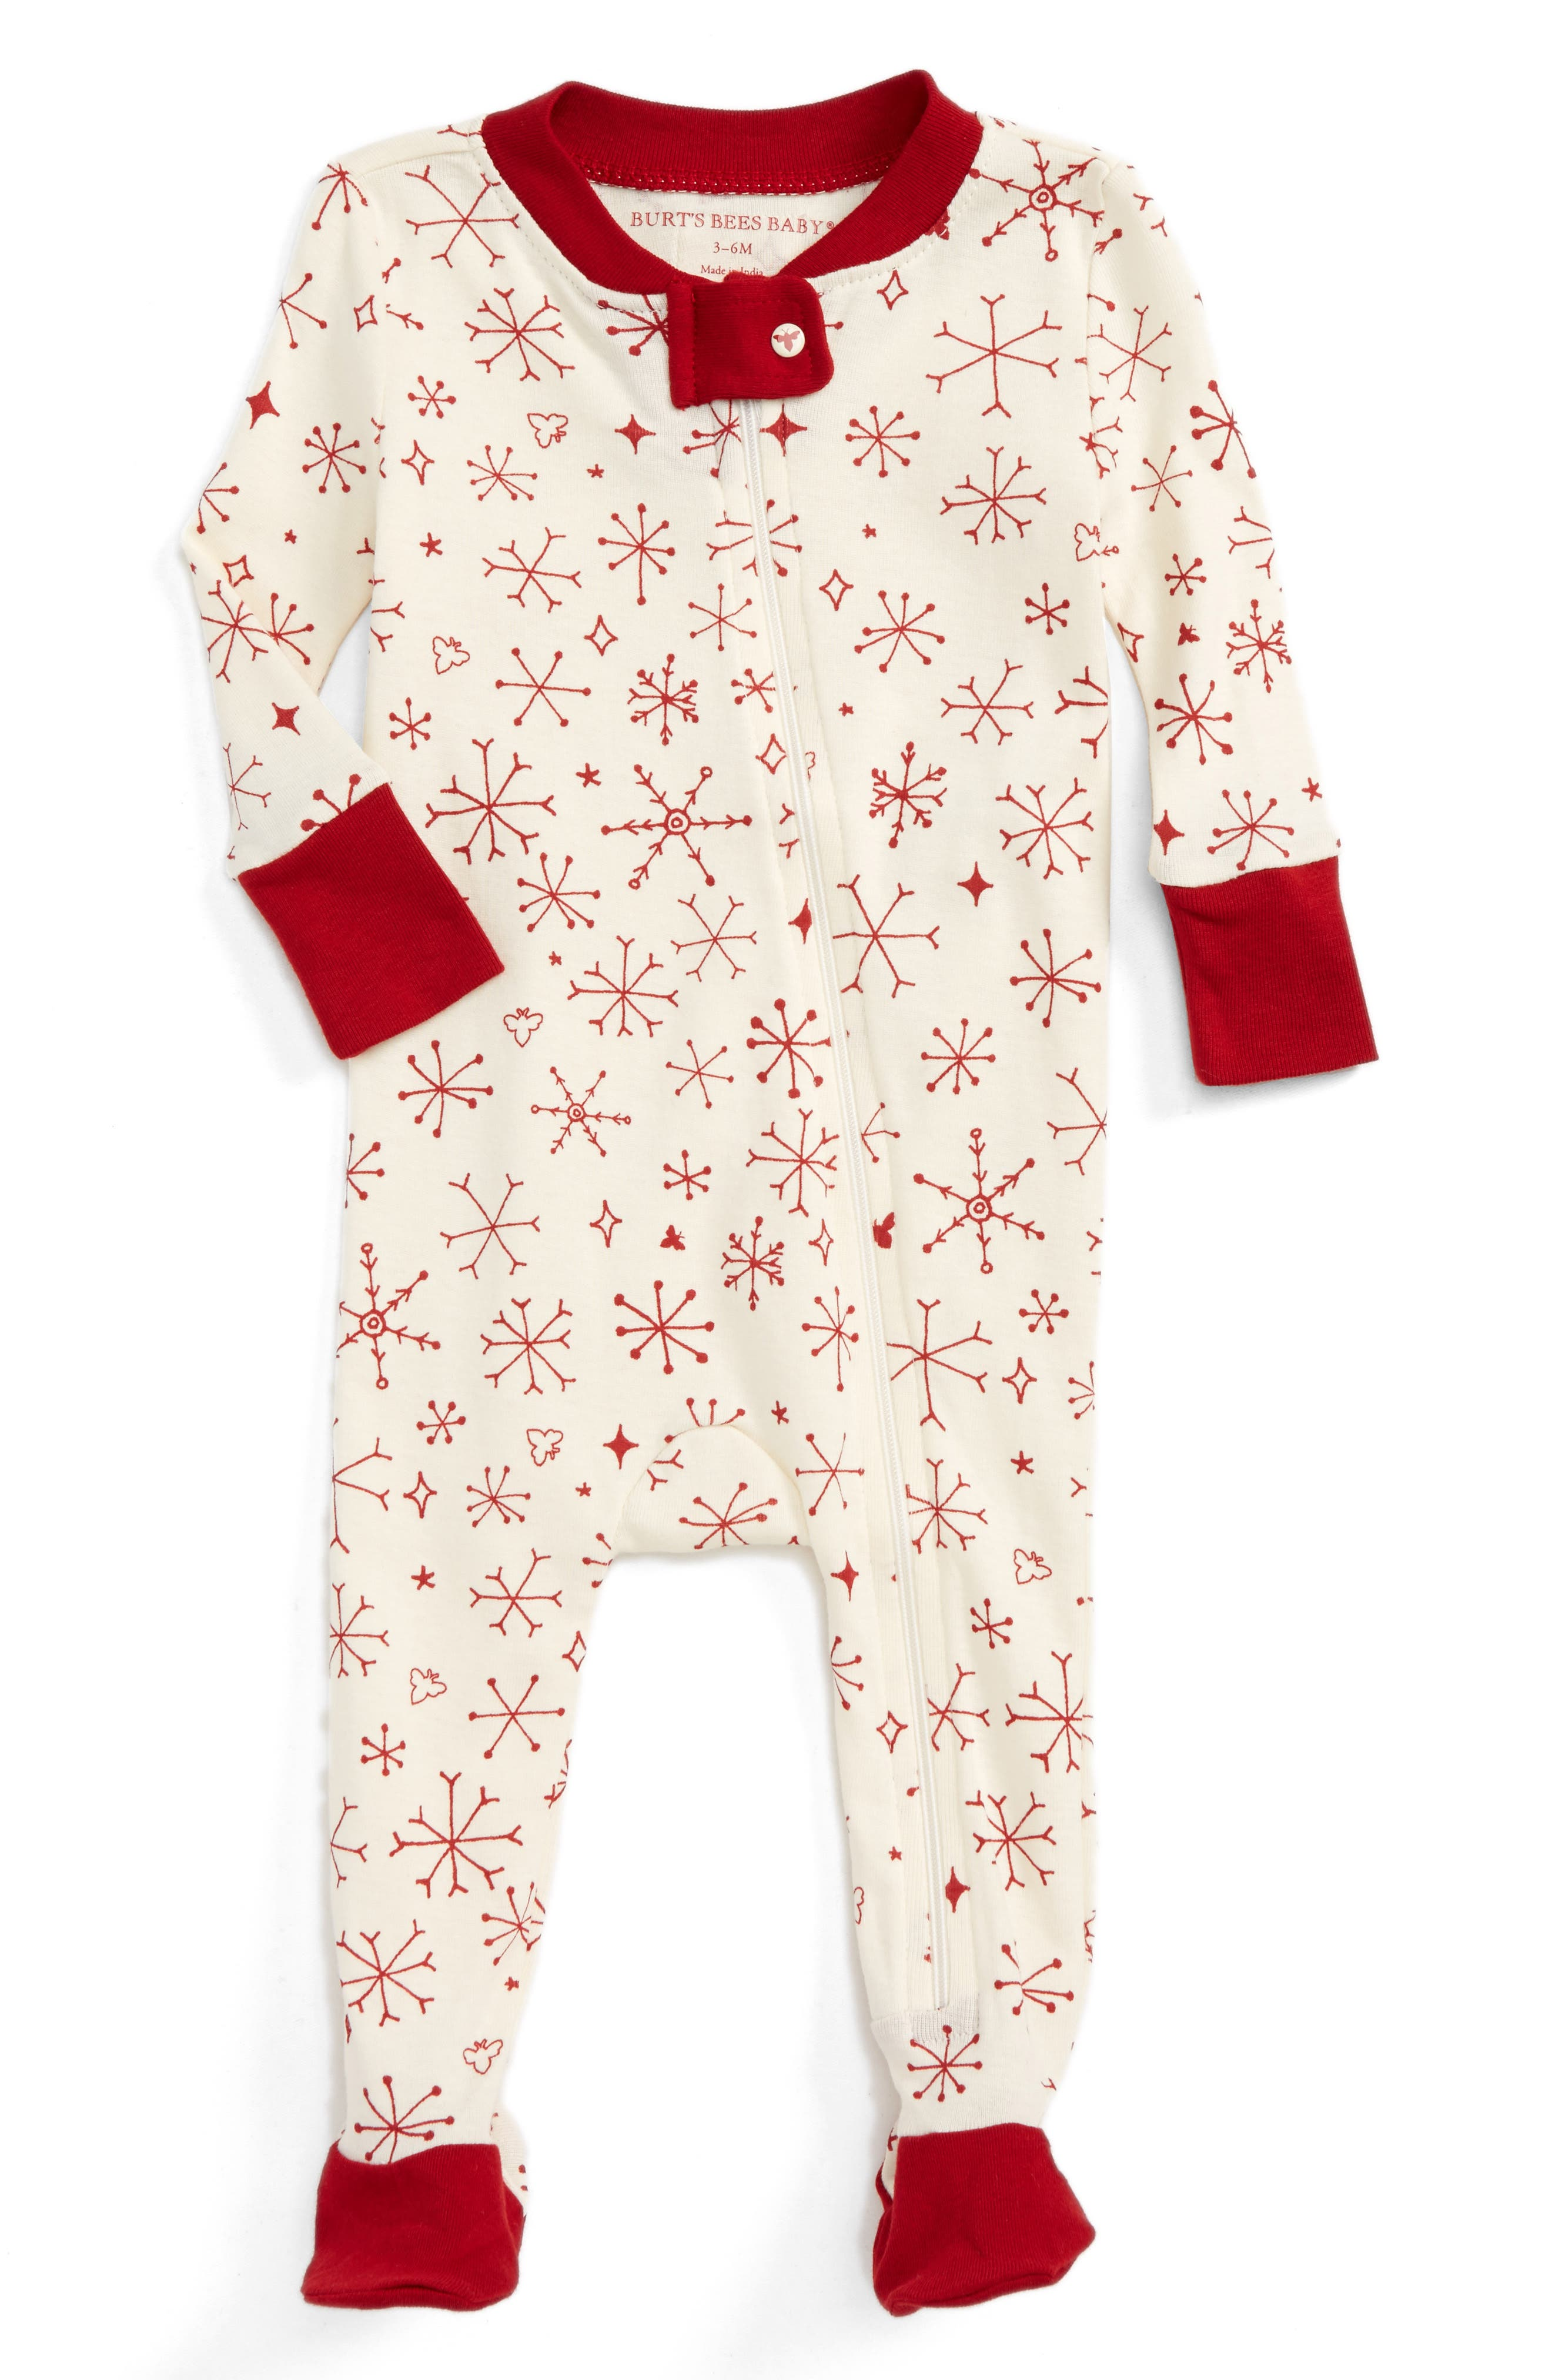 Burt's Bees Baby Falling Snowflakes Fitted One-Piece Pajamas (Baby)